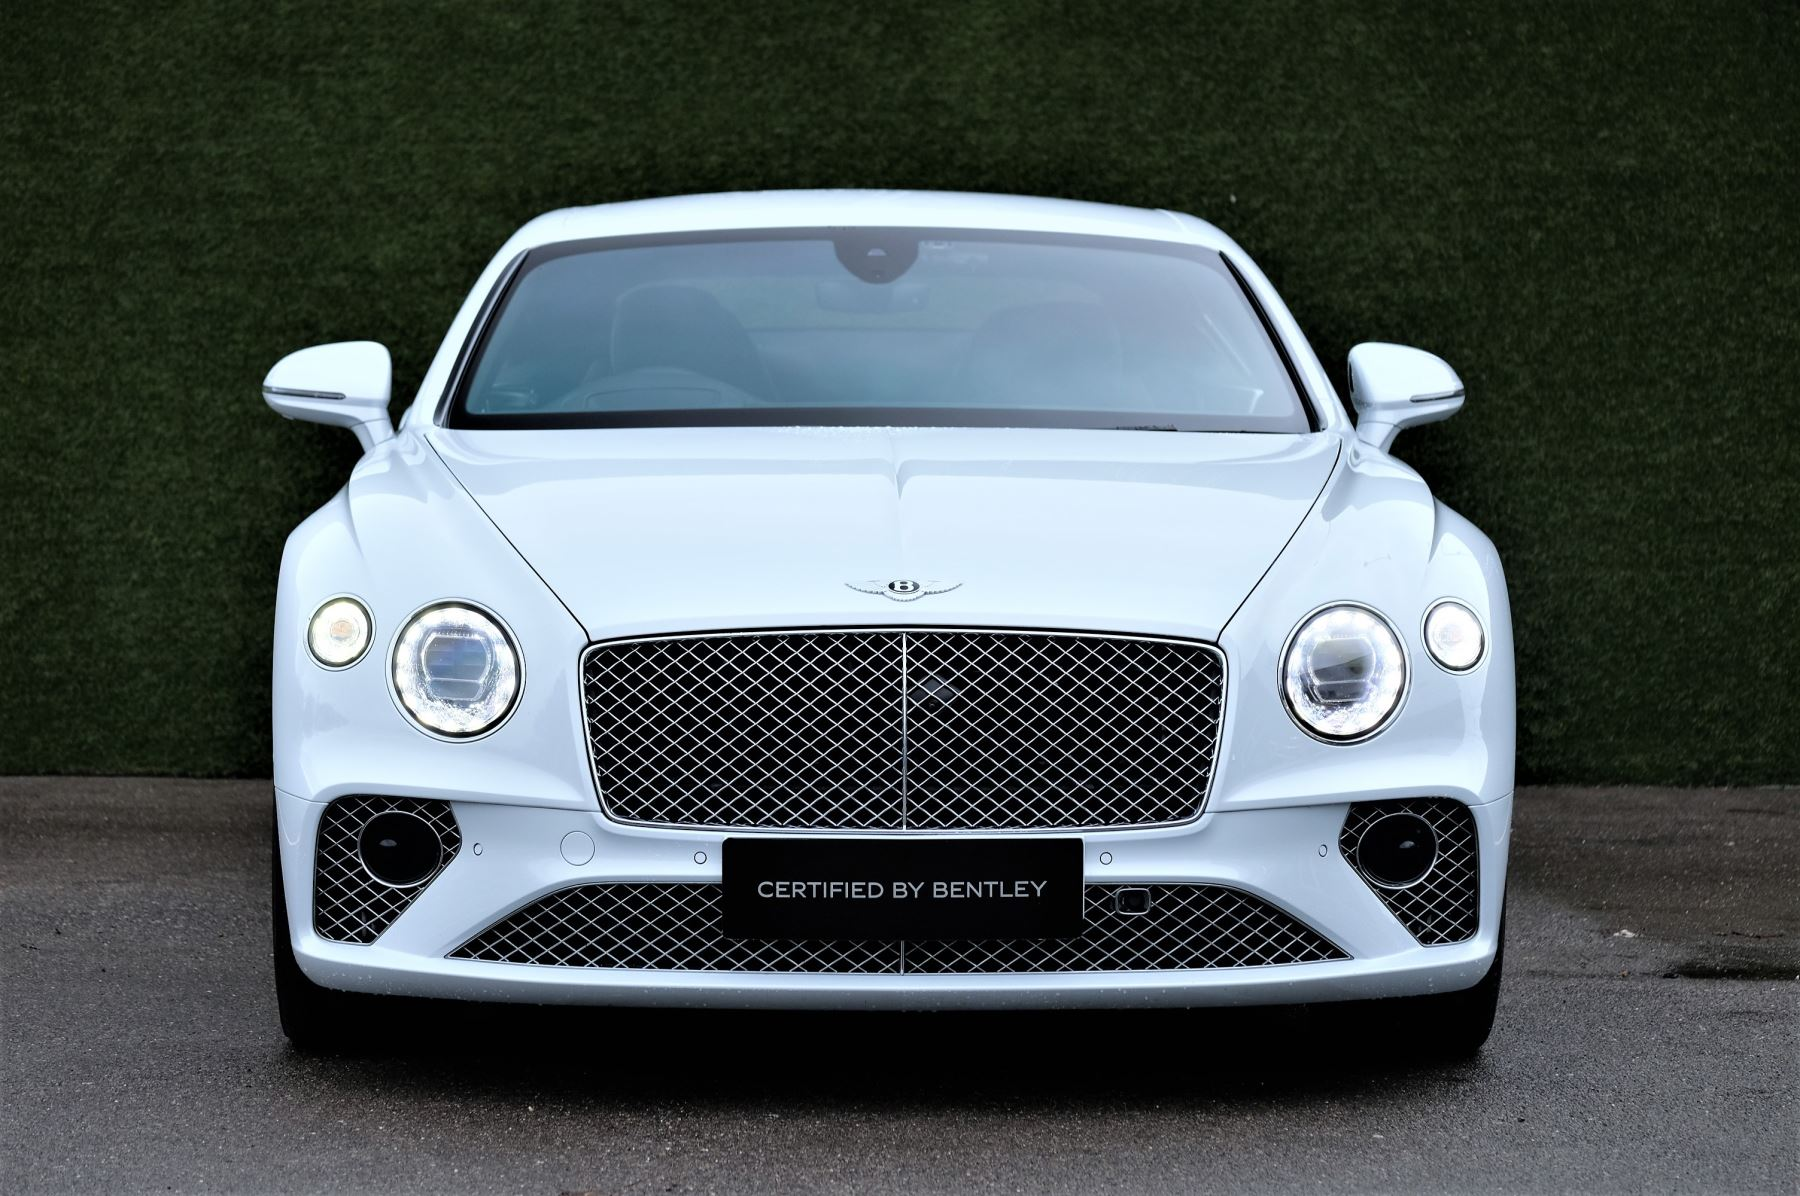 Bentley Continental GT First Edition 6.0 W12 2dr image 2